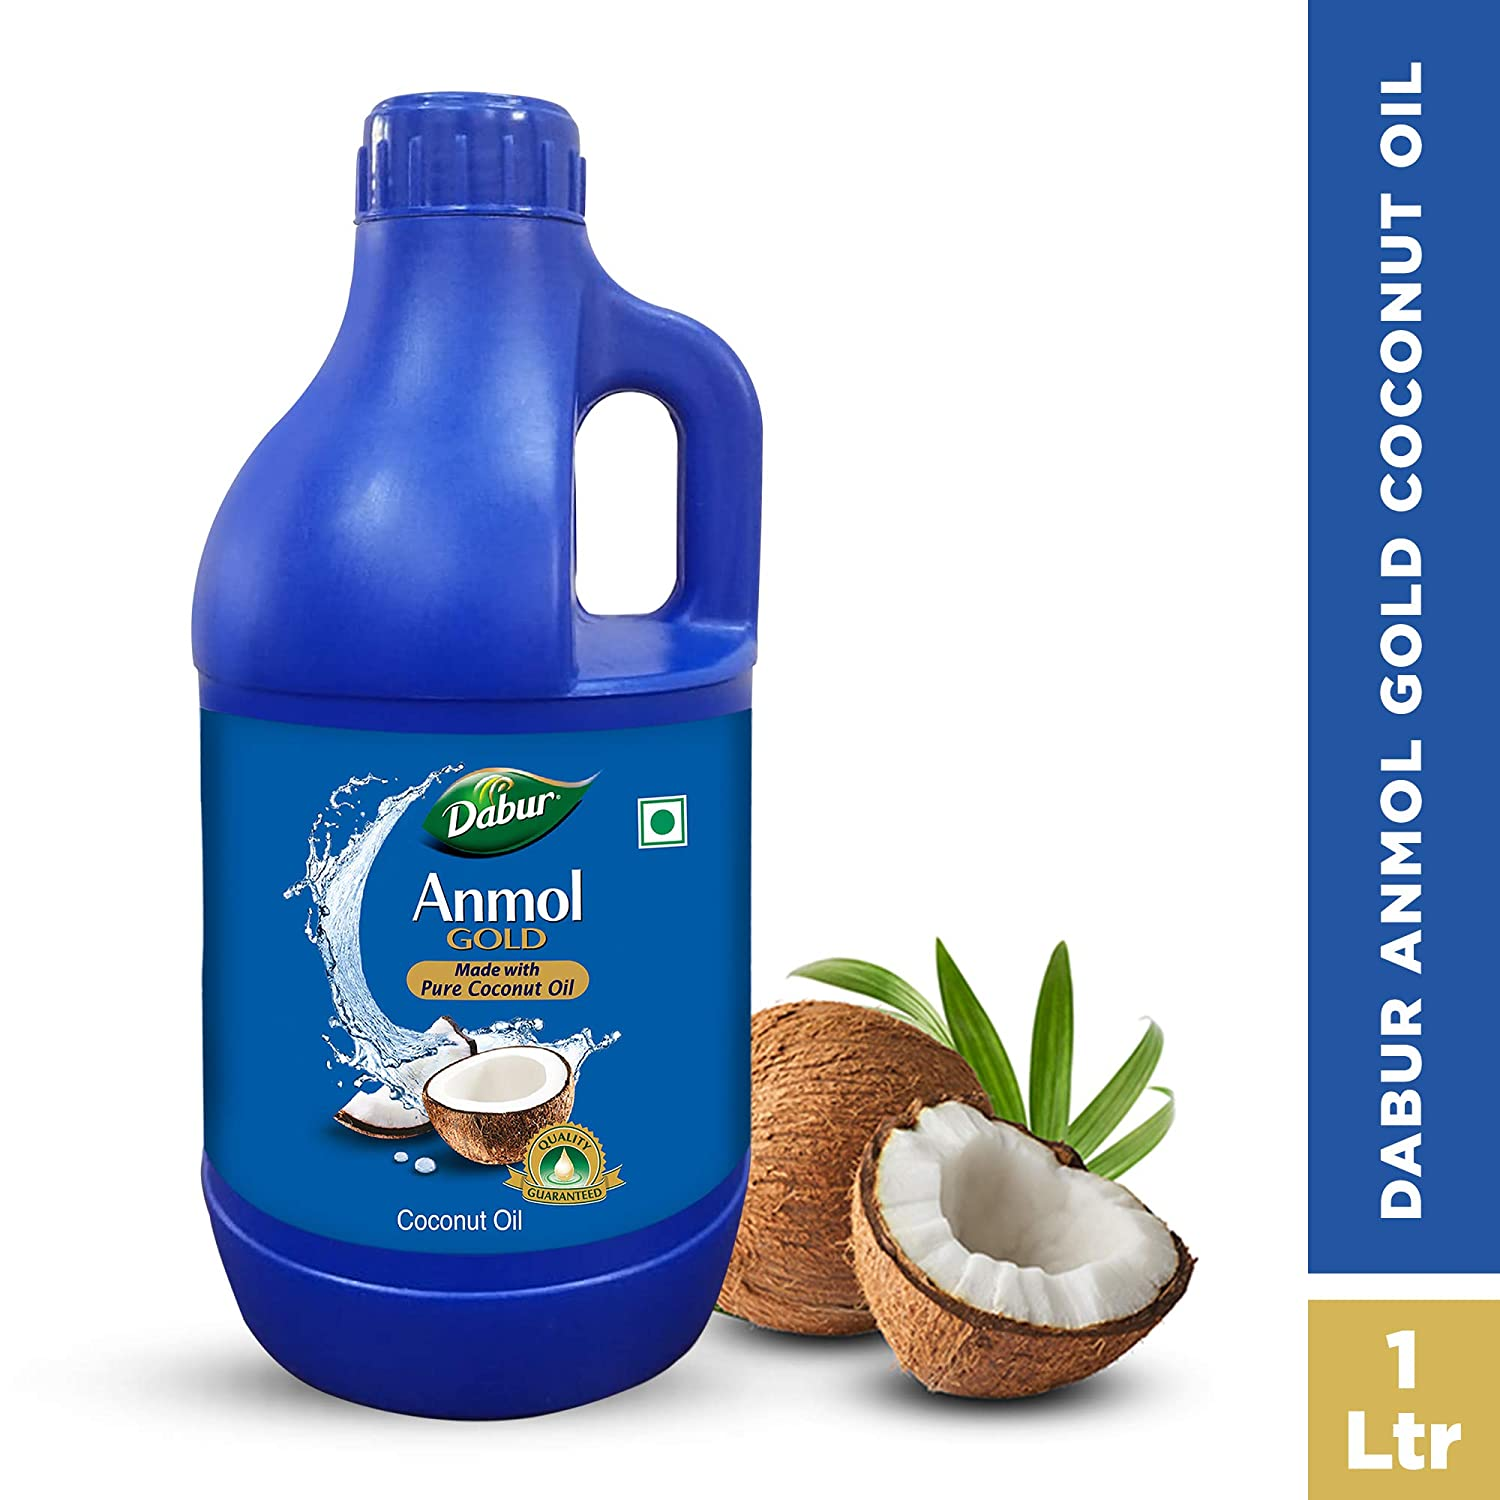 Dabur Anmol Gold 100% Pure Coconut Oil | Improves Skin Metabolism and Boosts Immunity -1L(Pet Jar)